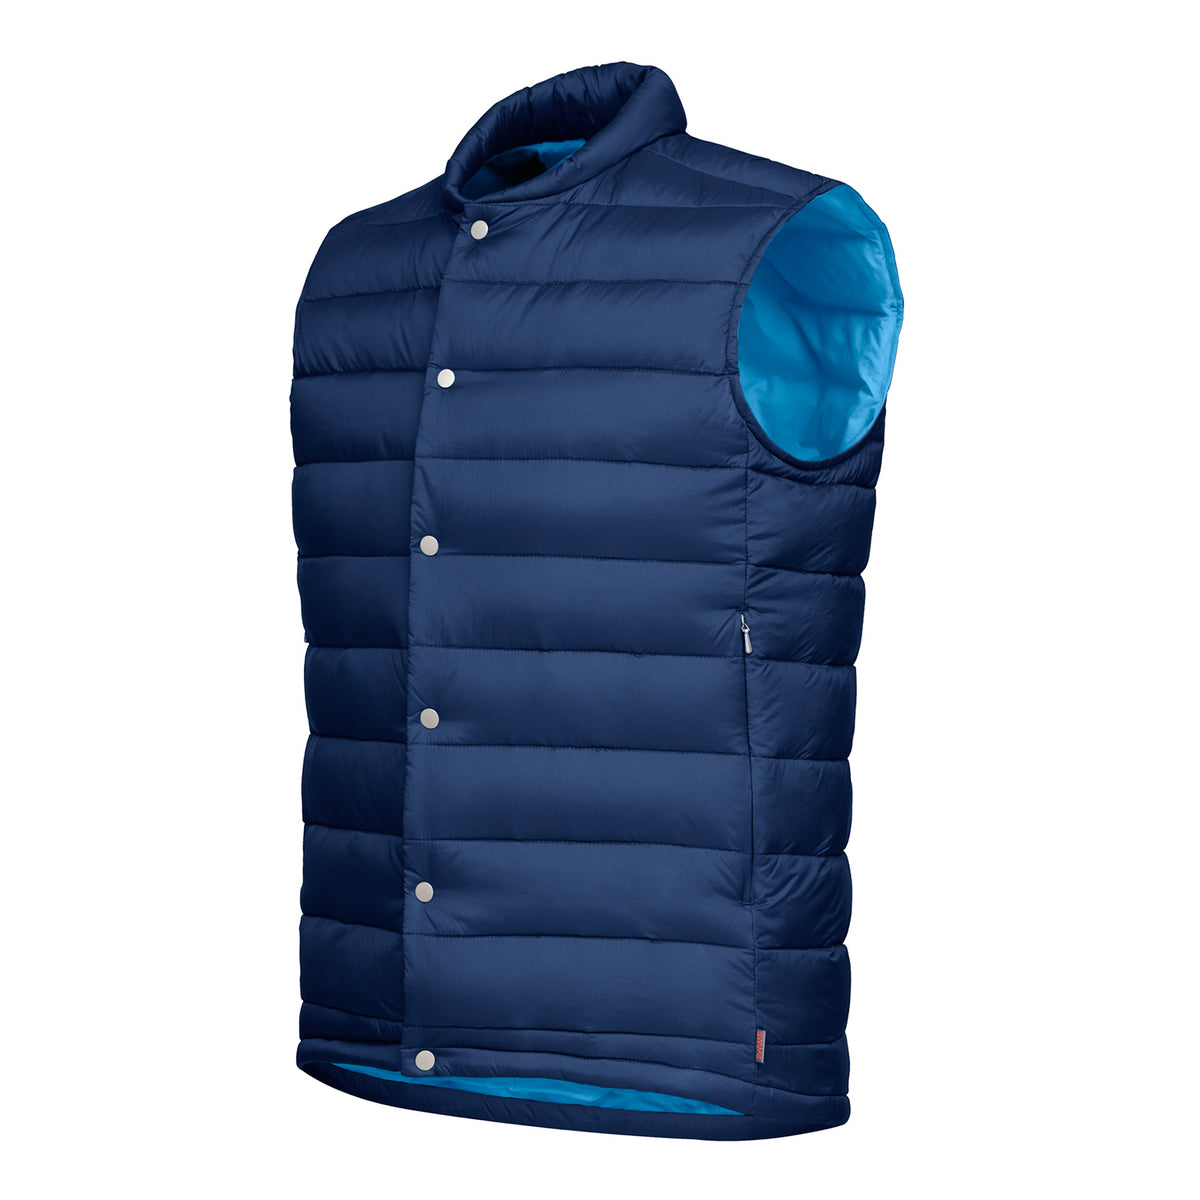 Motion Lite Vest - background::white,variant::Navy